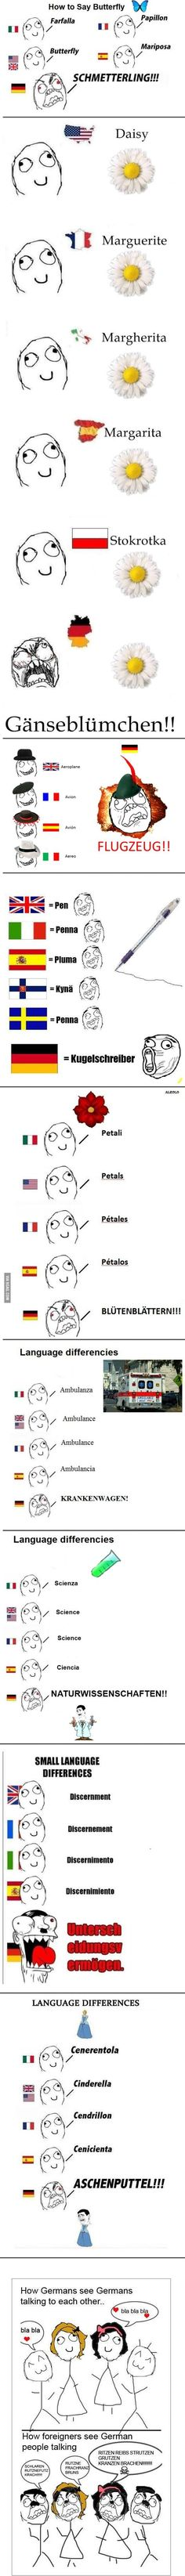 The German language... hahahaha this is so funny